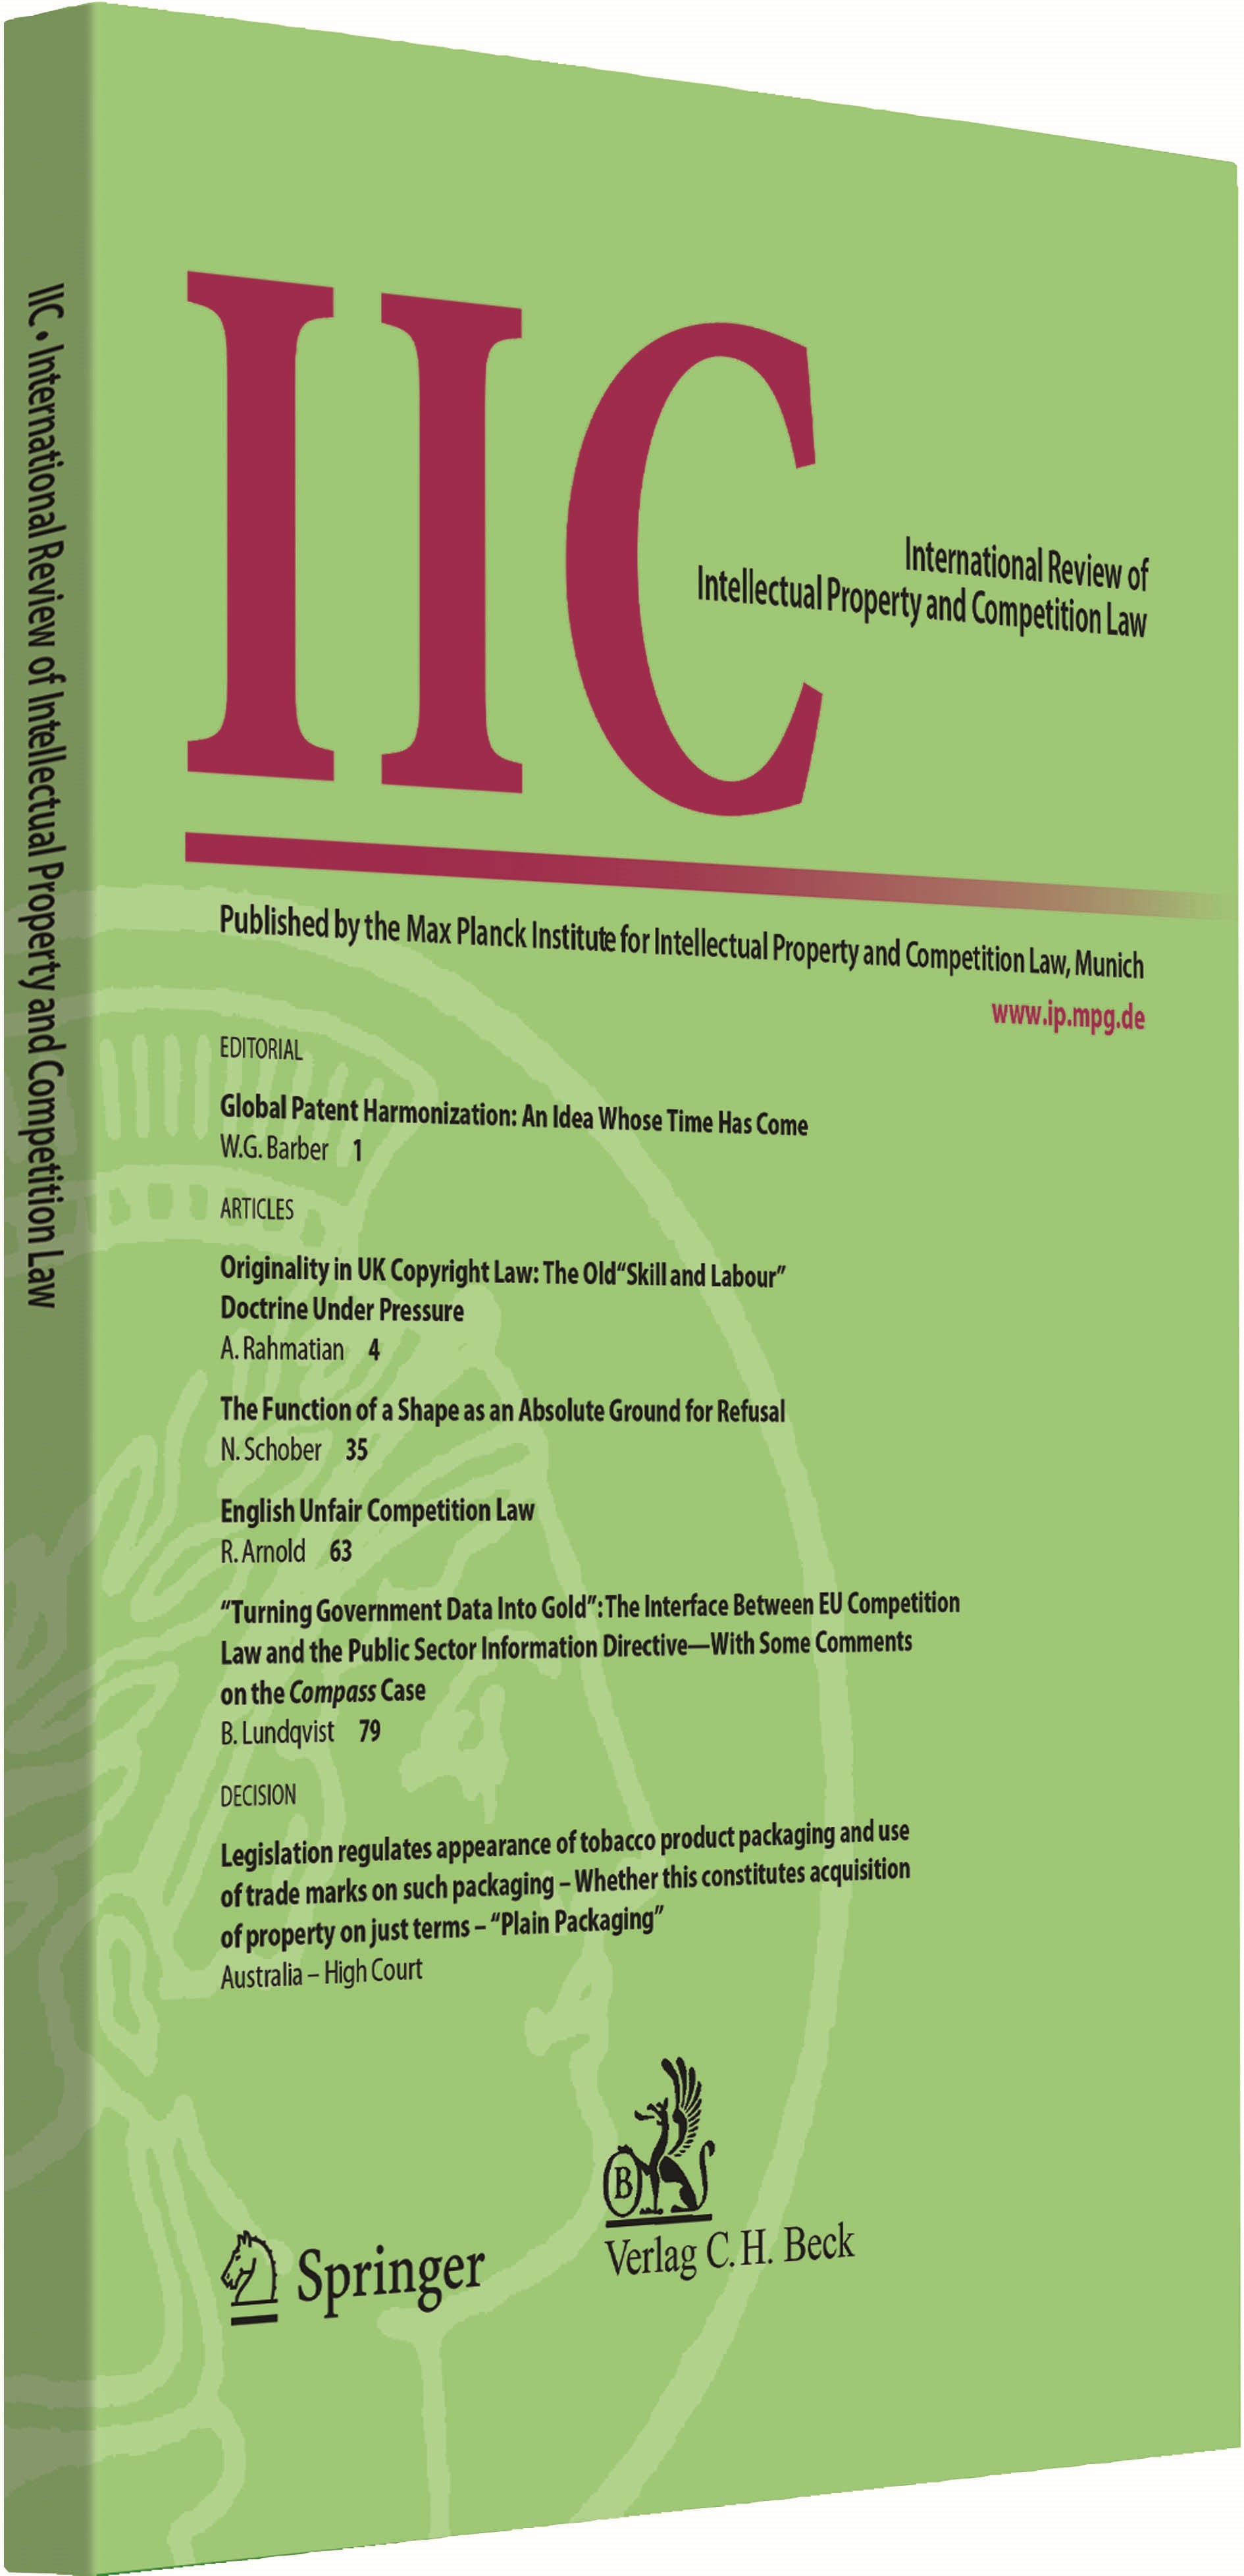 IIC - International Review of Intellectual Property and Competition Law (Cover)